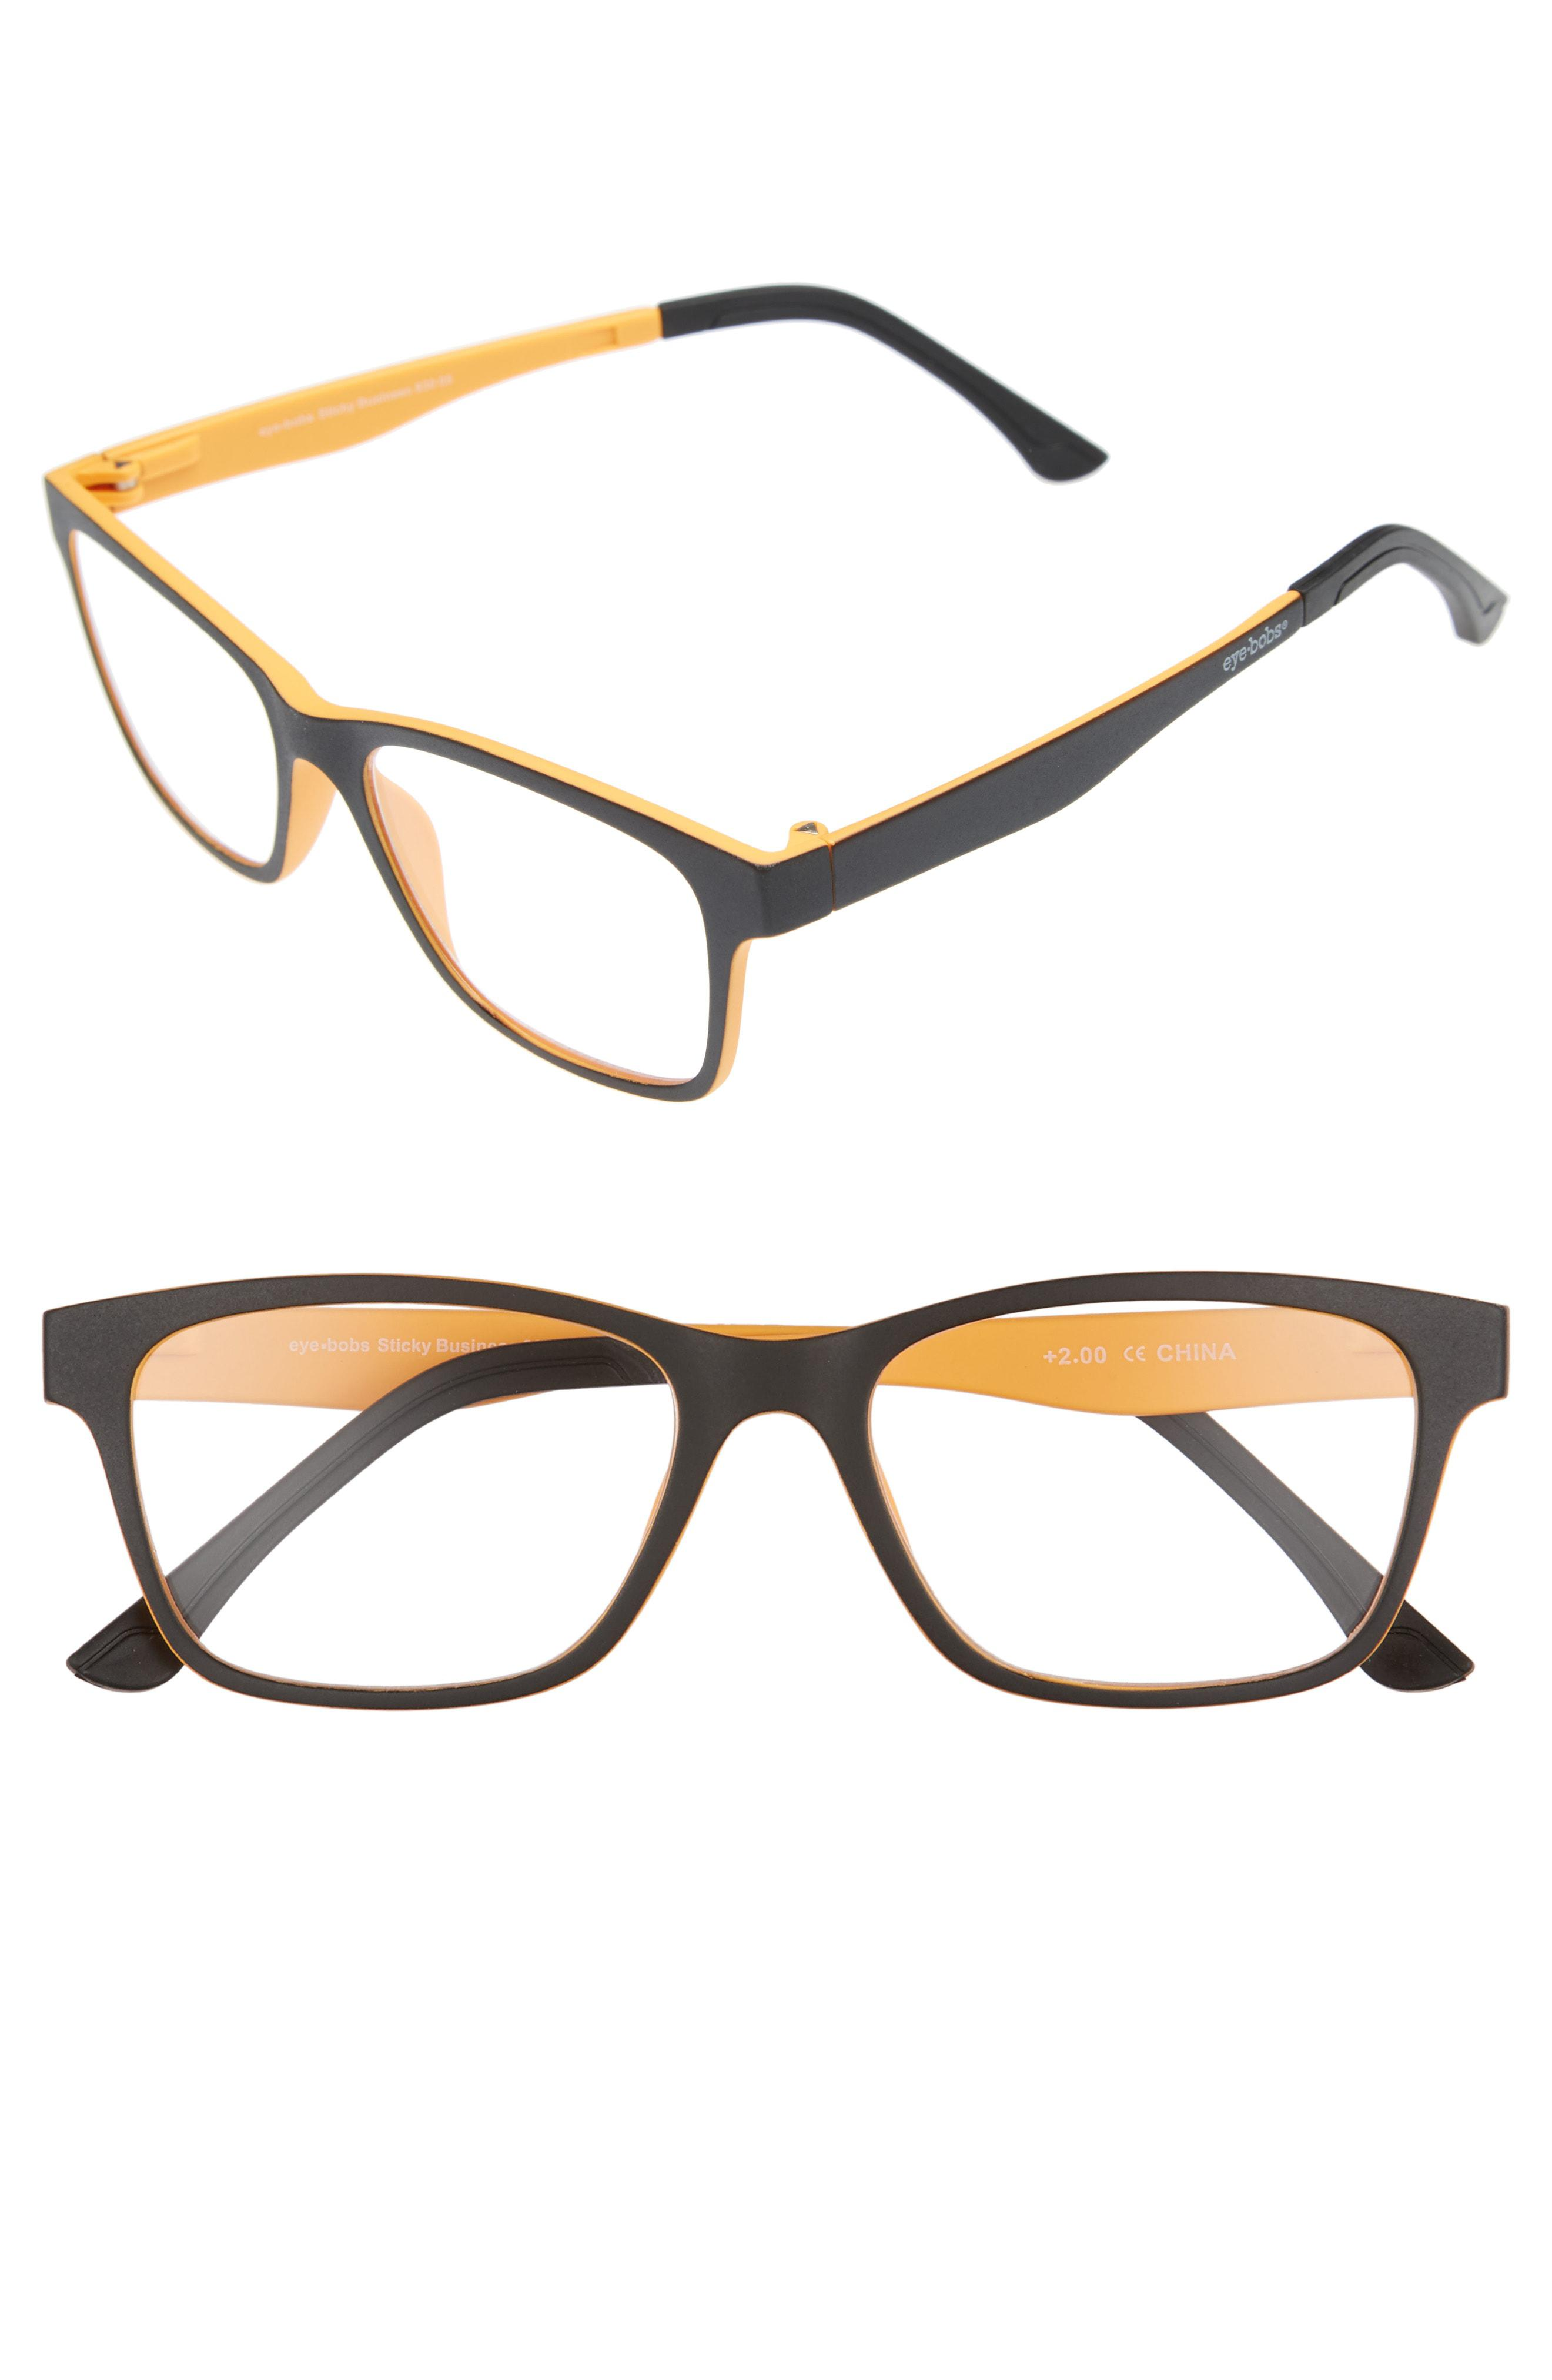 79161cdaa43d Lyst - Eyebobs Sticky Business 52mm Reading Glasses With Polarized ...